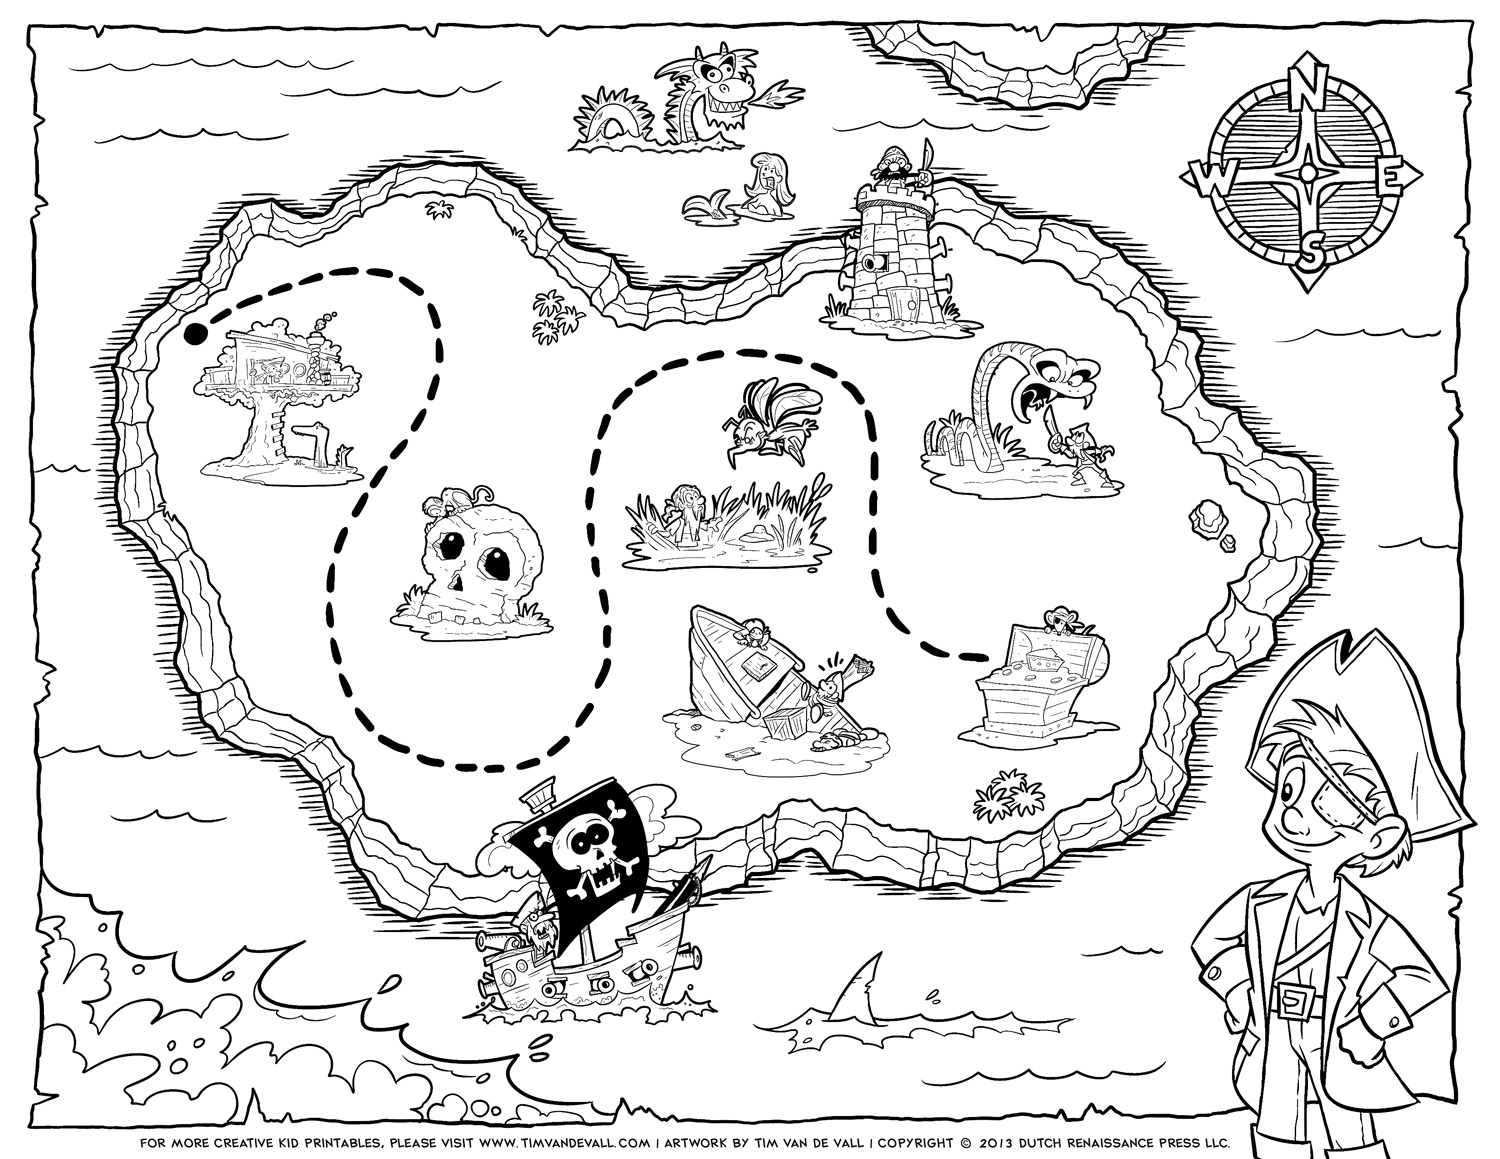 Tim van de vall comics printables for kids for Treasure coloring pages